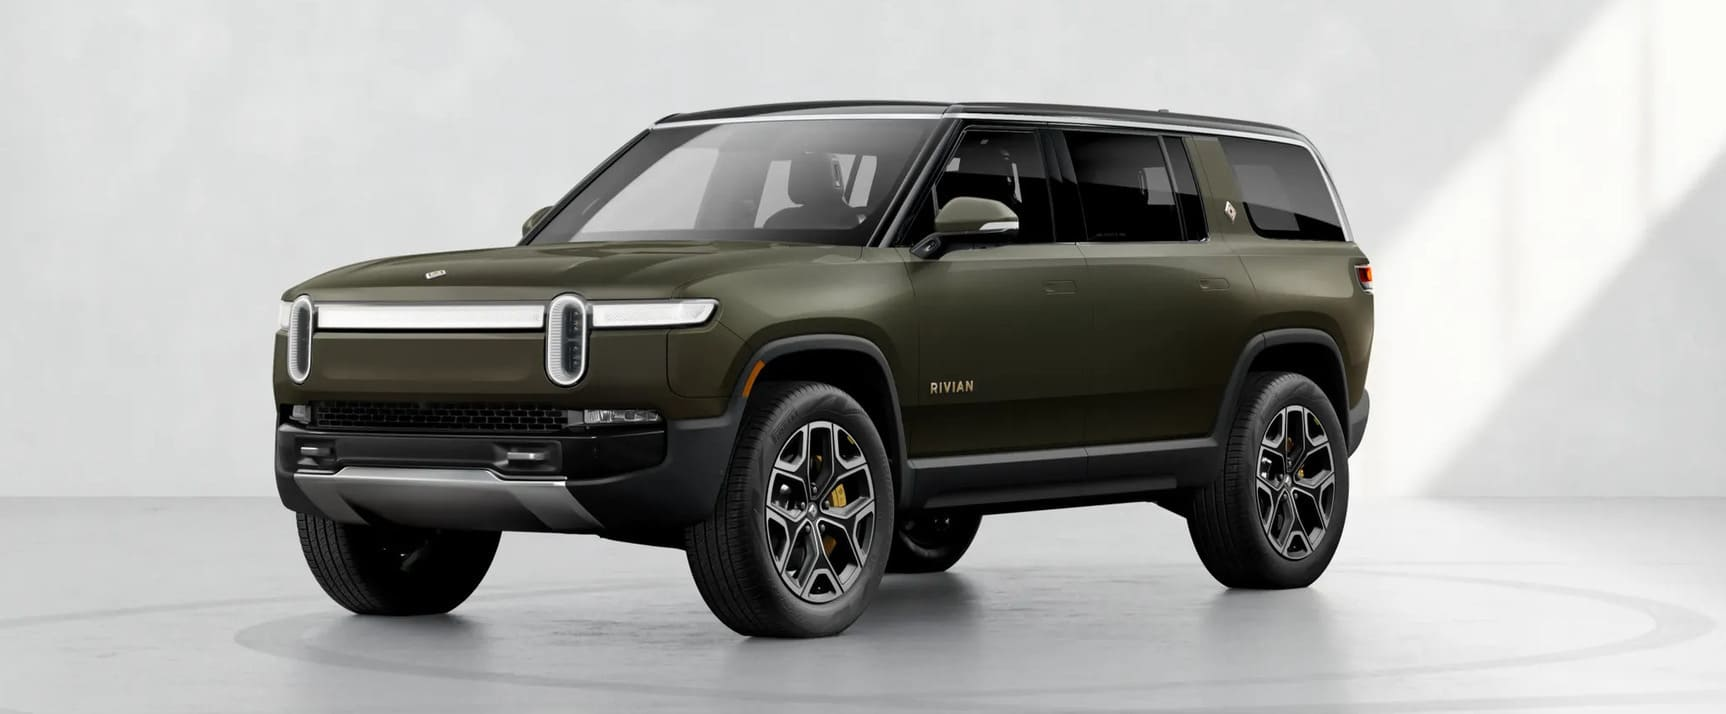 Rivian Confirms R1T And R1S Pricing. Both EVs Launching In Mid-2021 | Carscoops